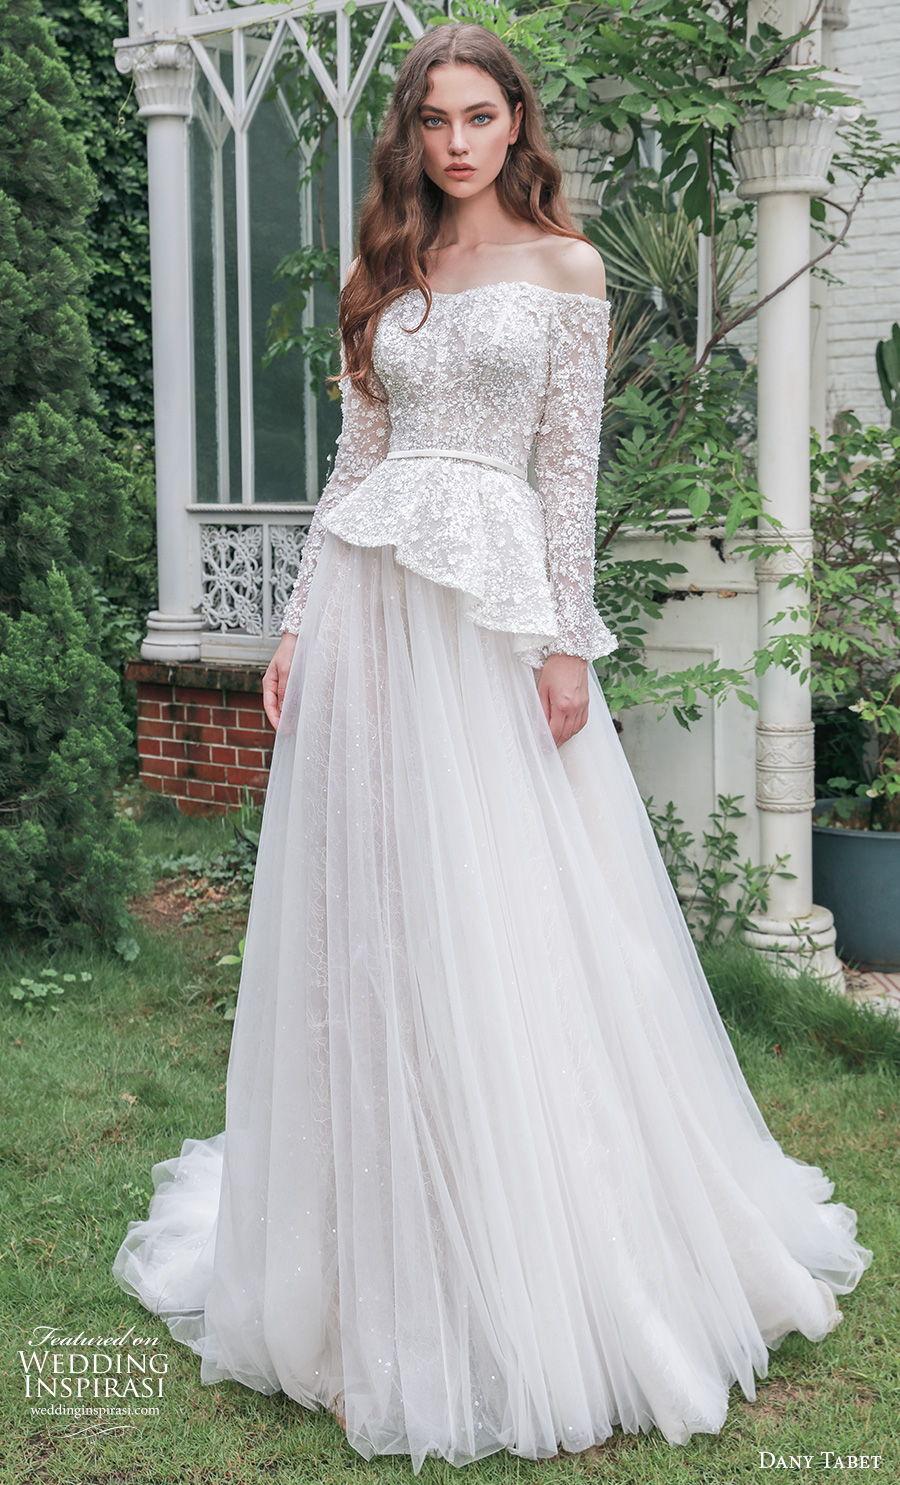 dany tabet 2021 emerge bridal long sleeves off the shoulder heavily embellished bodice peplum romantic a  line wedding dress medium train (3) mv